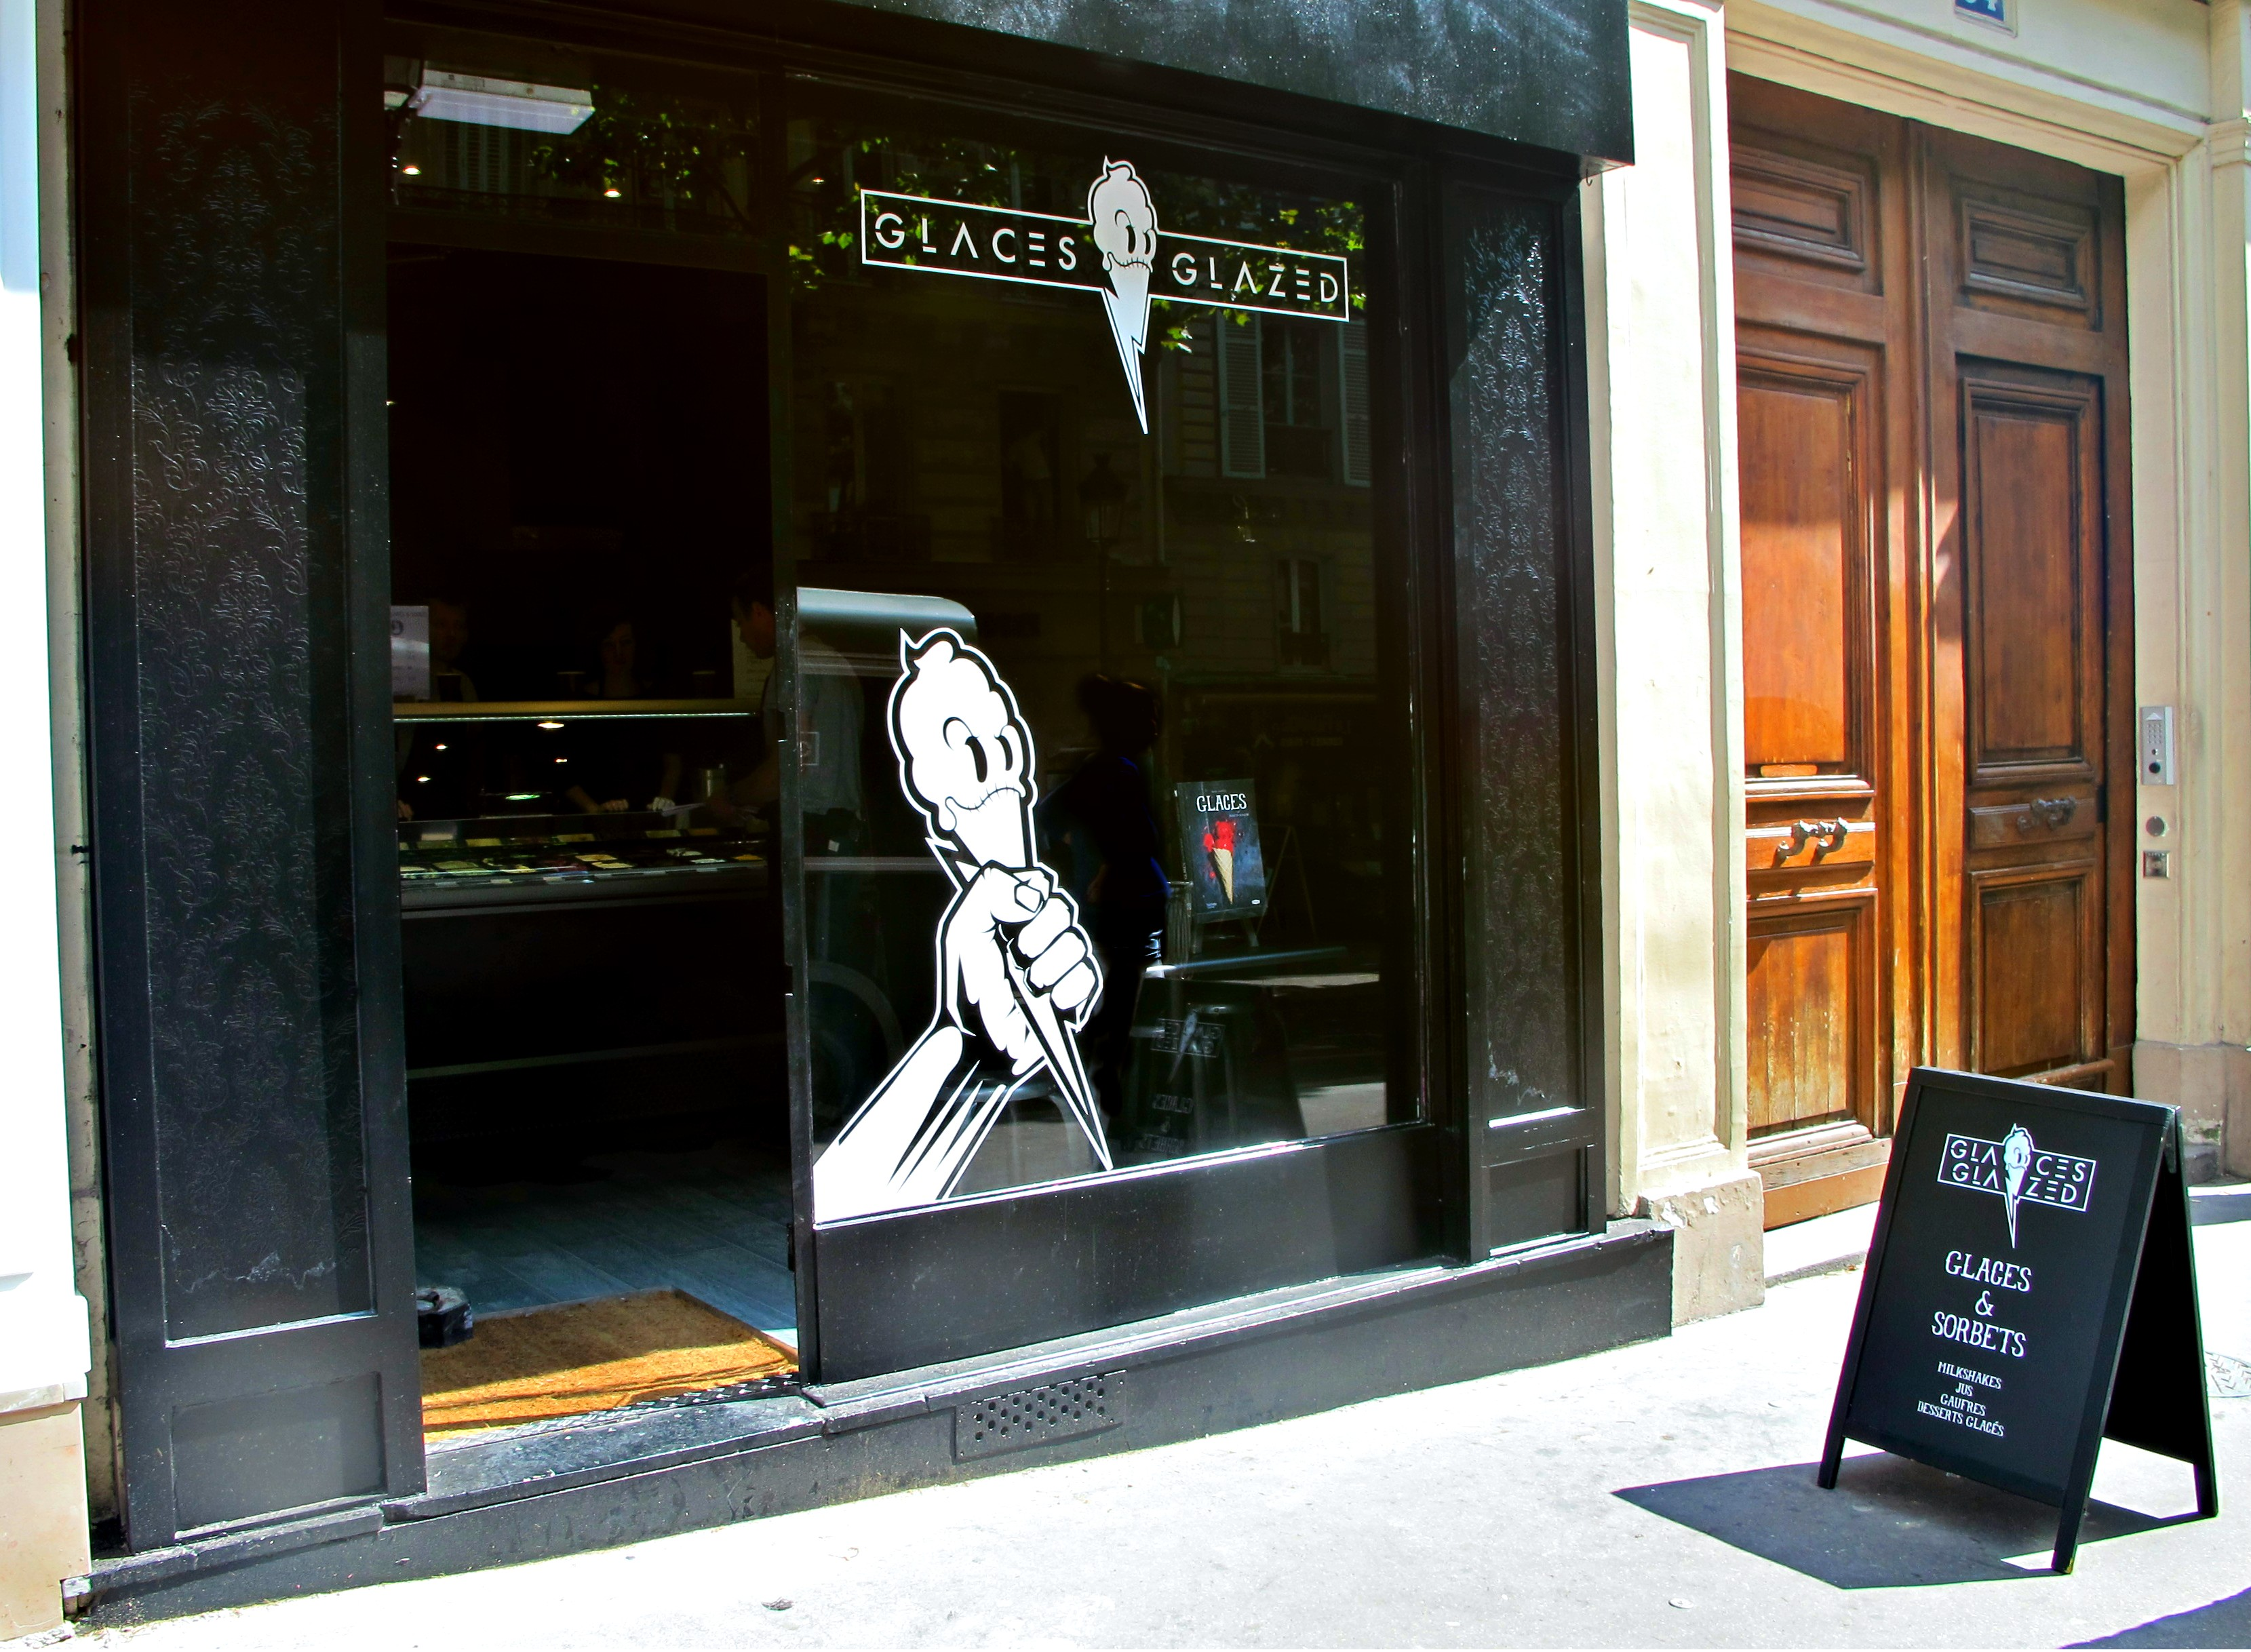 Glaces glazed creative and cool ice creams first store for Le miroir rue des martyrs